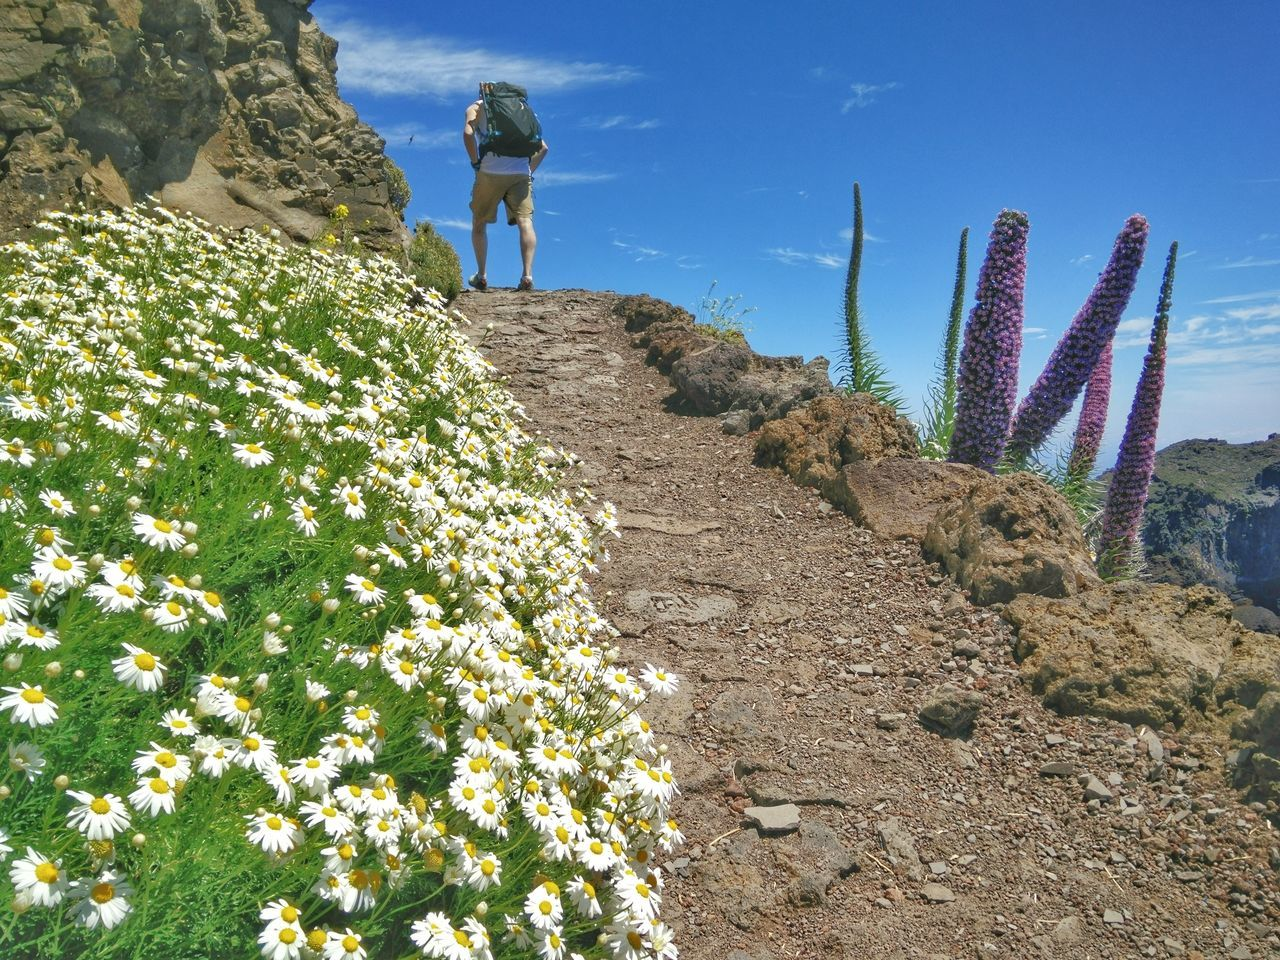 Cactus Nature Plant Day Outdoors Sky Beauty In Nature Hiking La Palma, Canarias